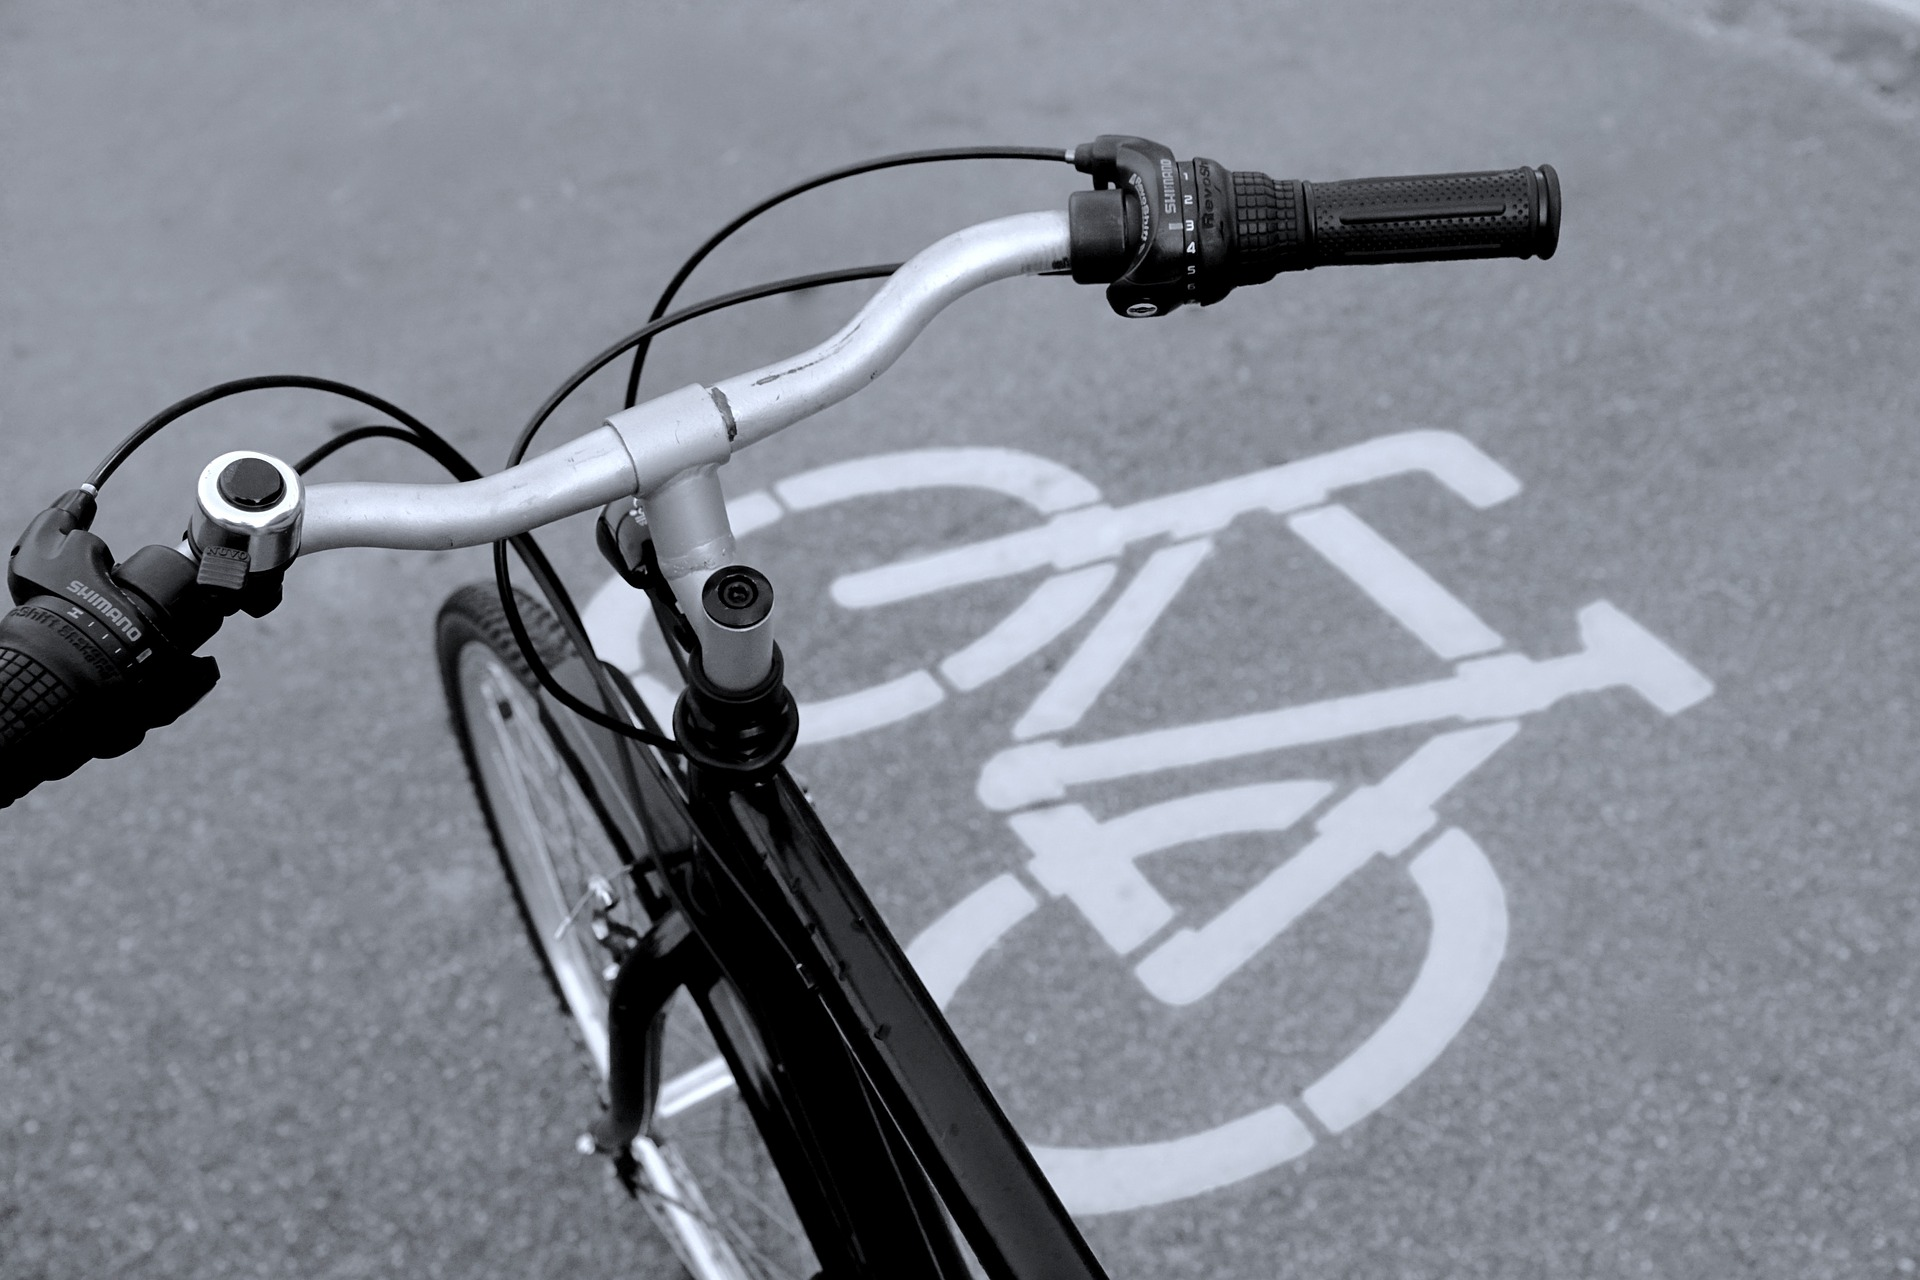 bicycle-path-830216_1920